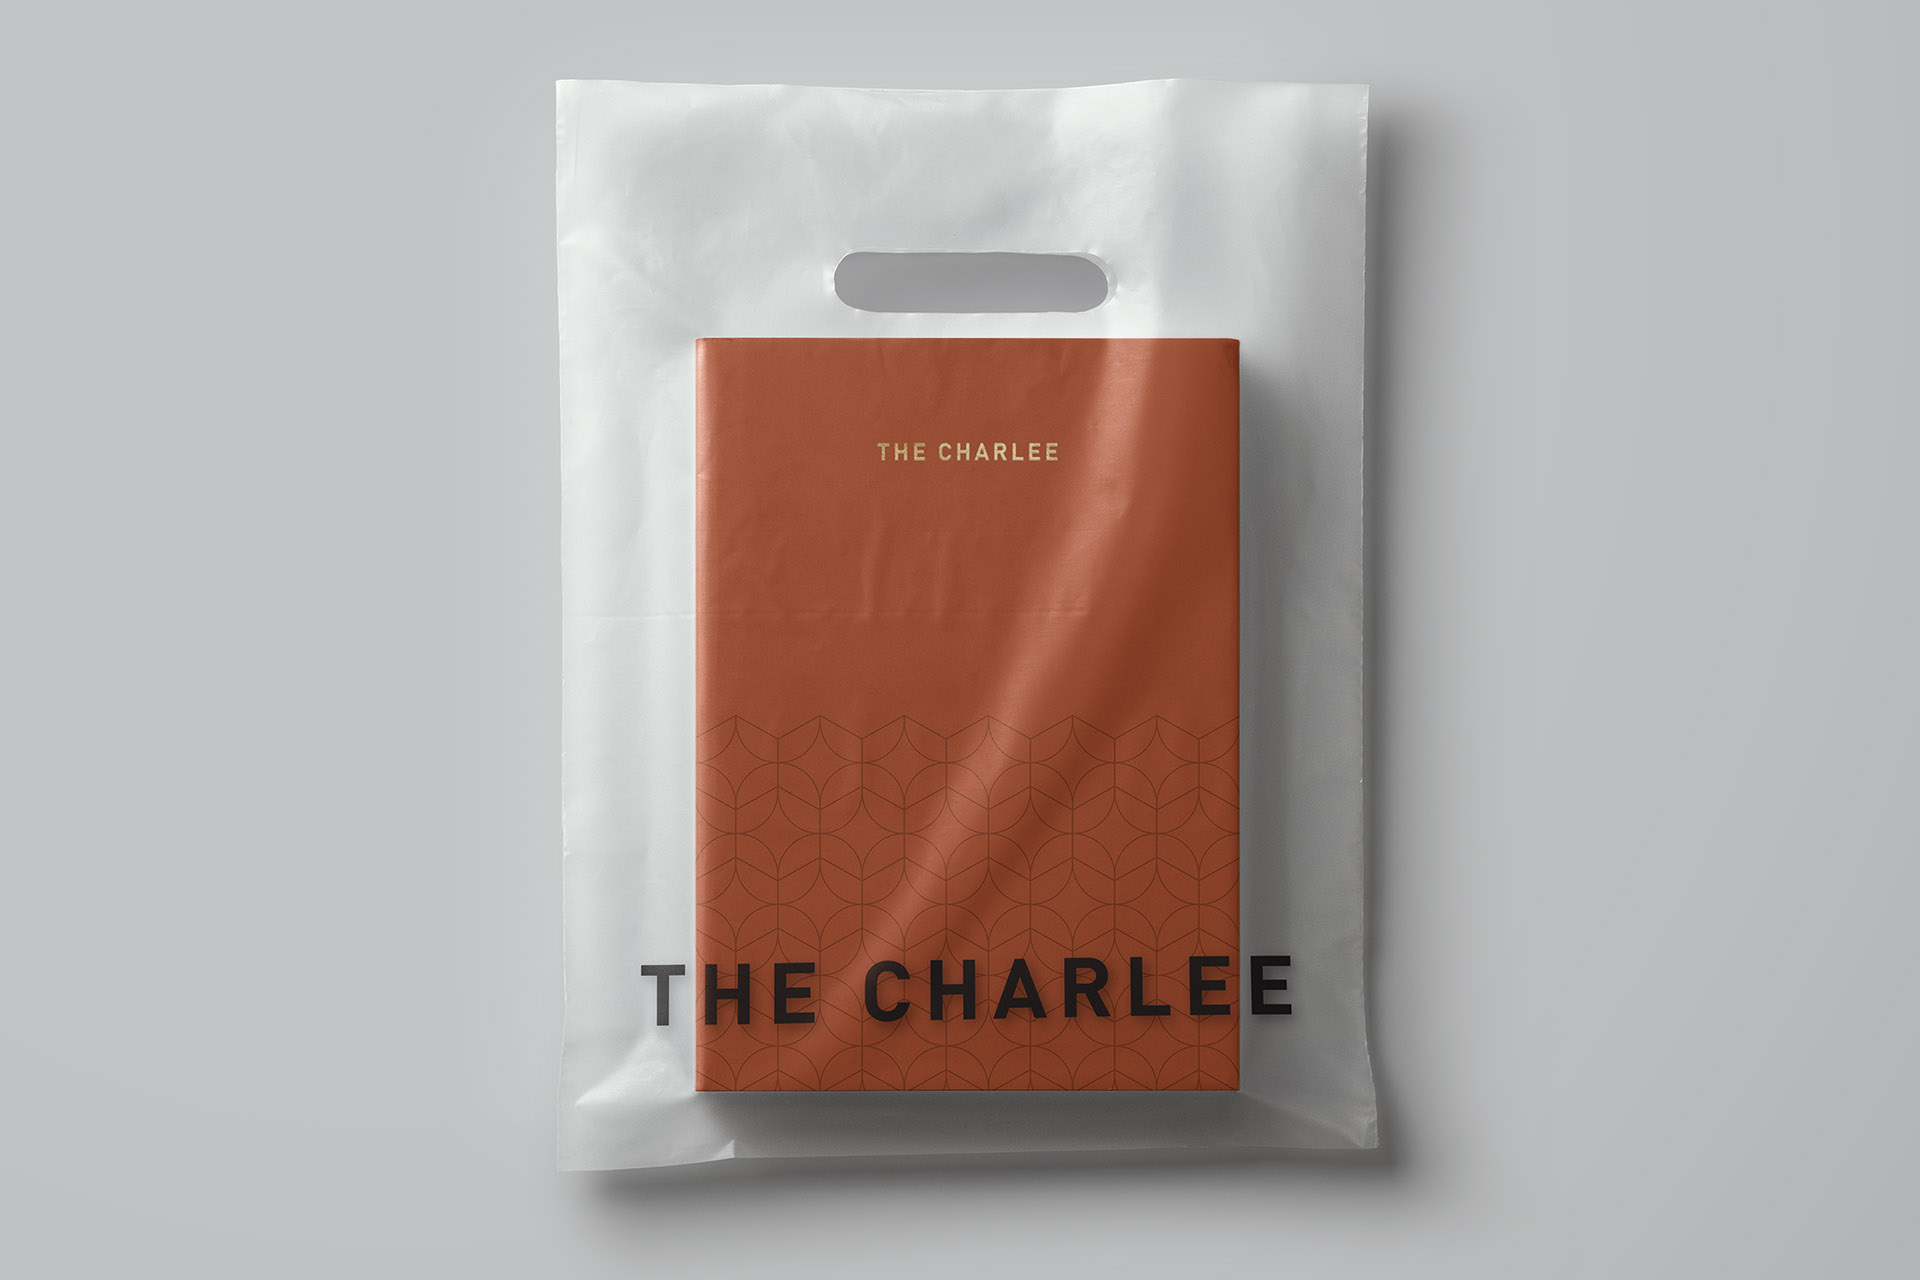 A book inside a transparent bag with The Charlee salon's logo on it